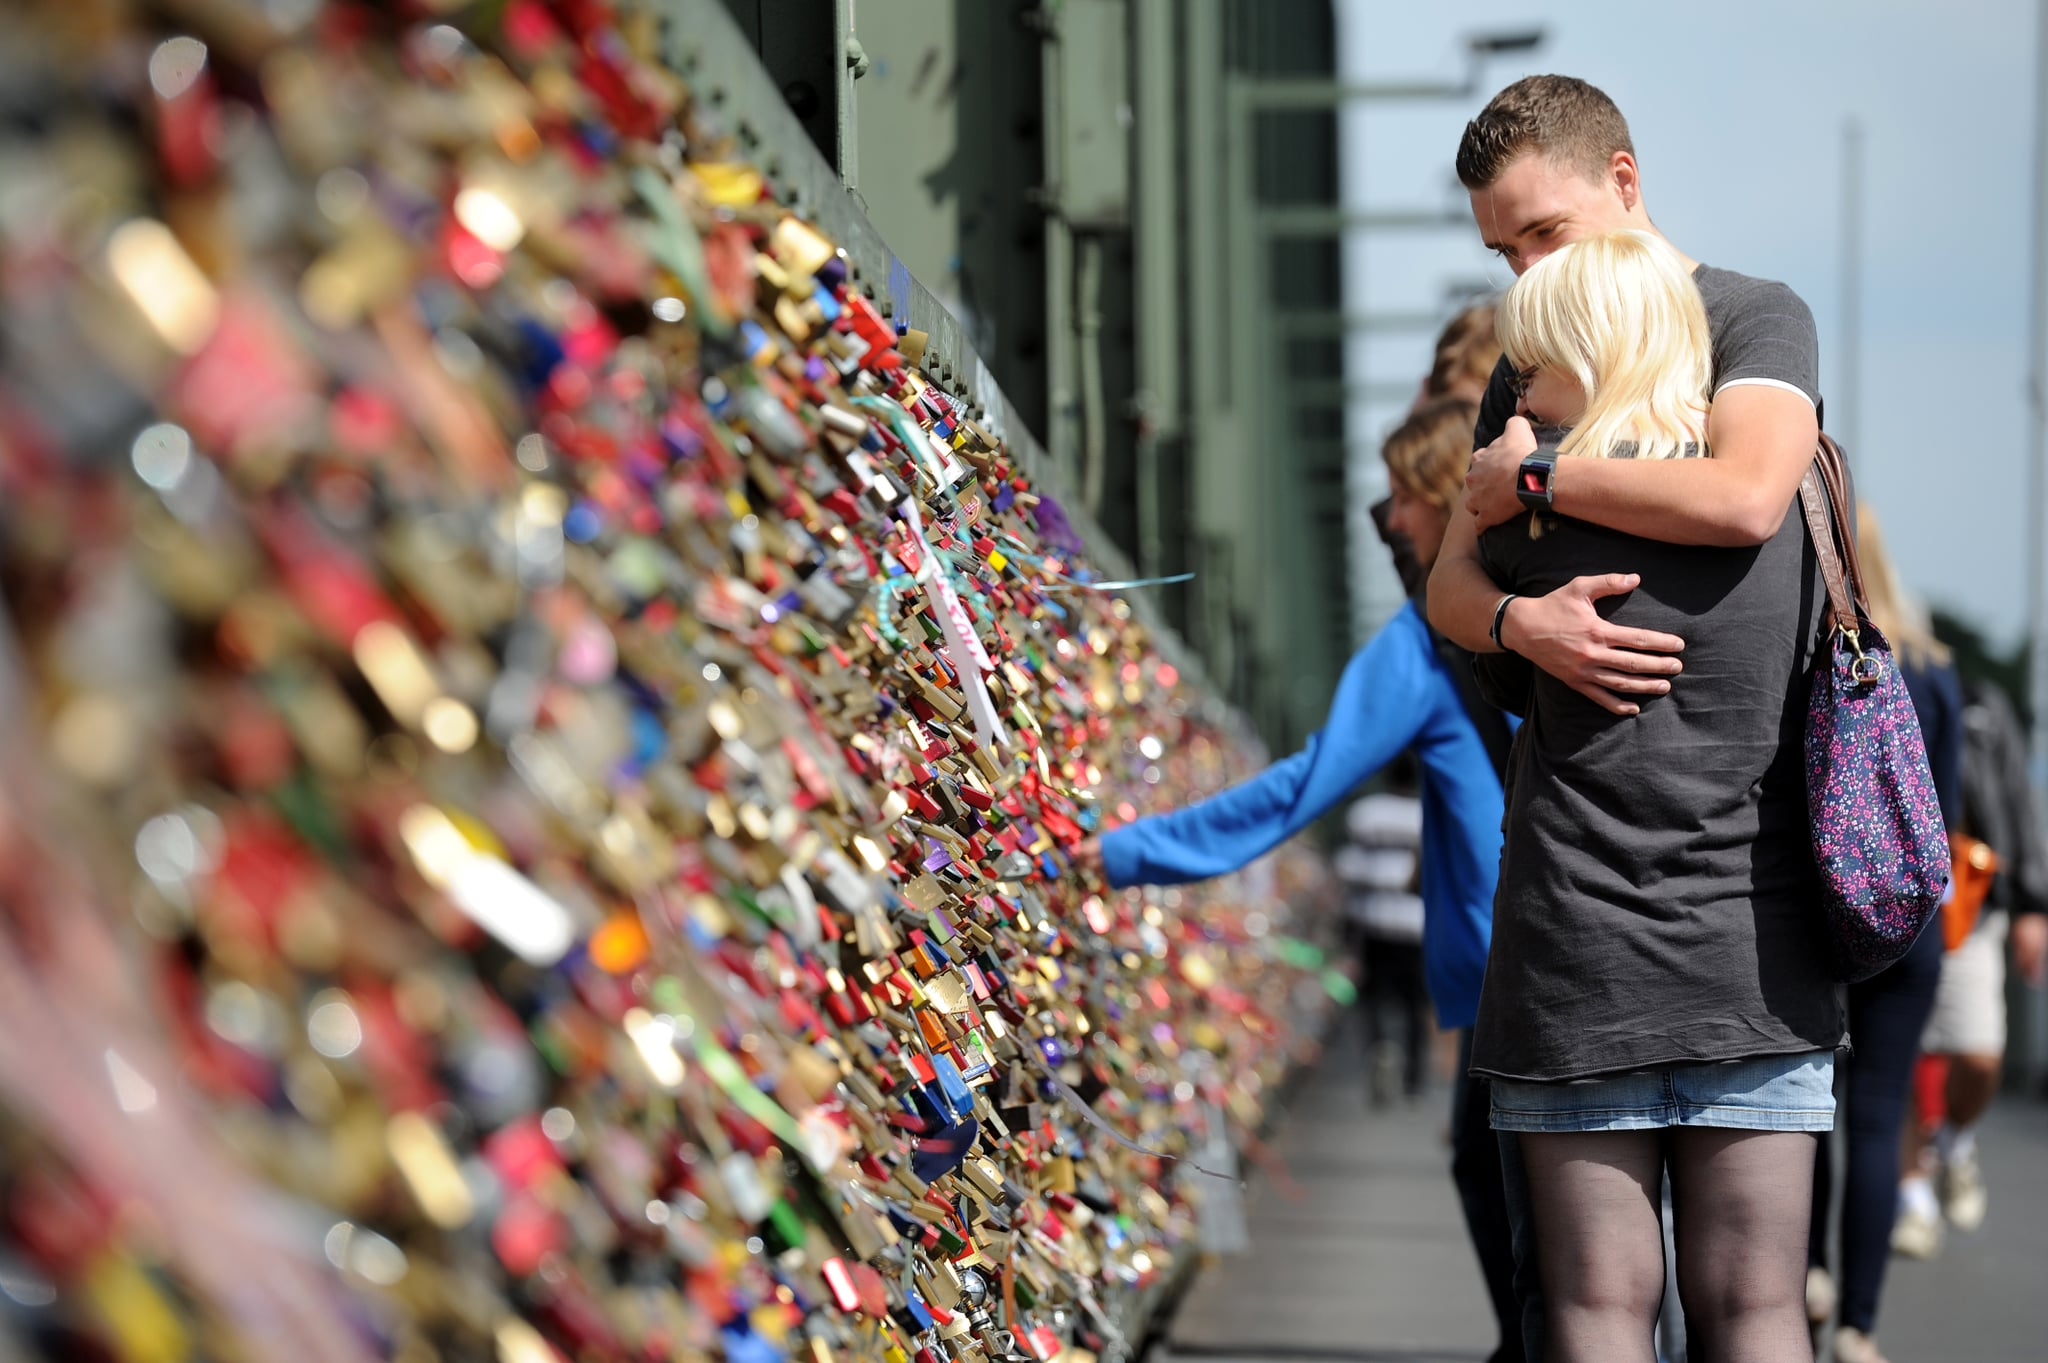 A couple embraced after affixing their lock to the bridge in Germany.